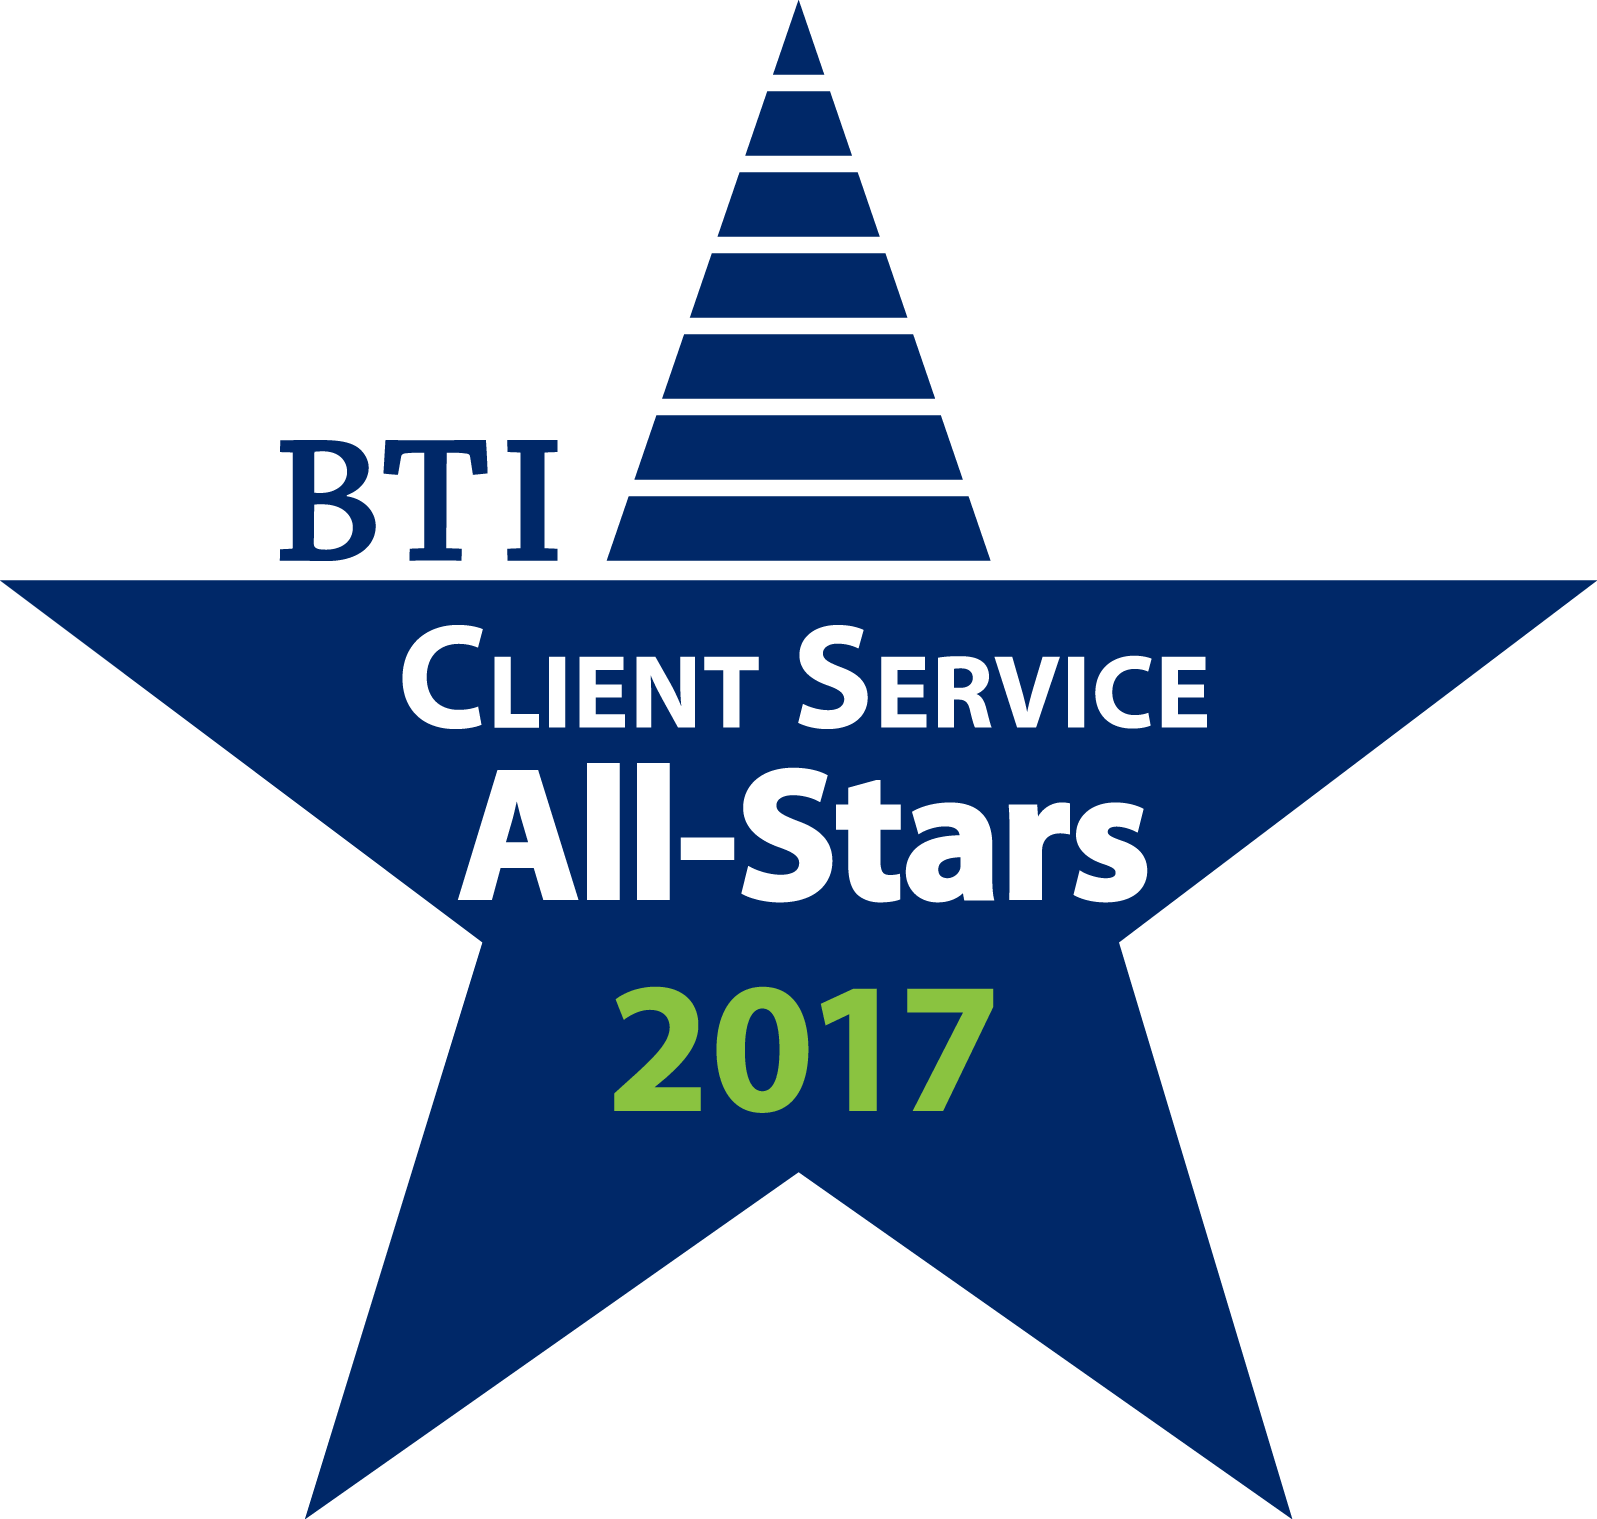 BTI Client Service All Star 2017